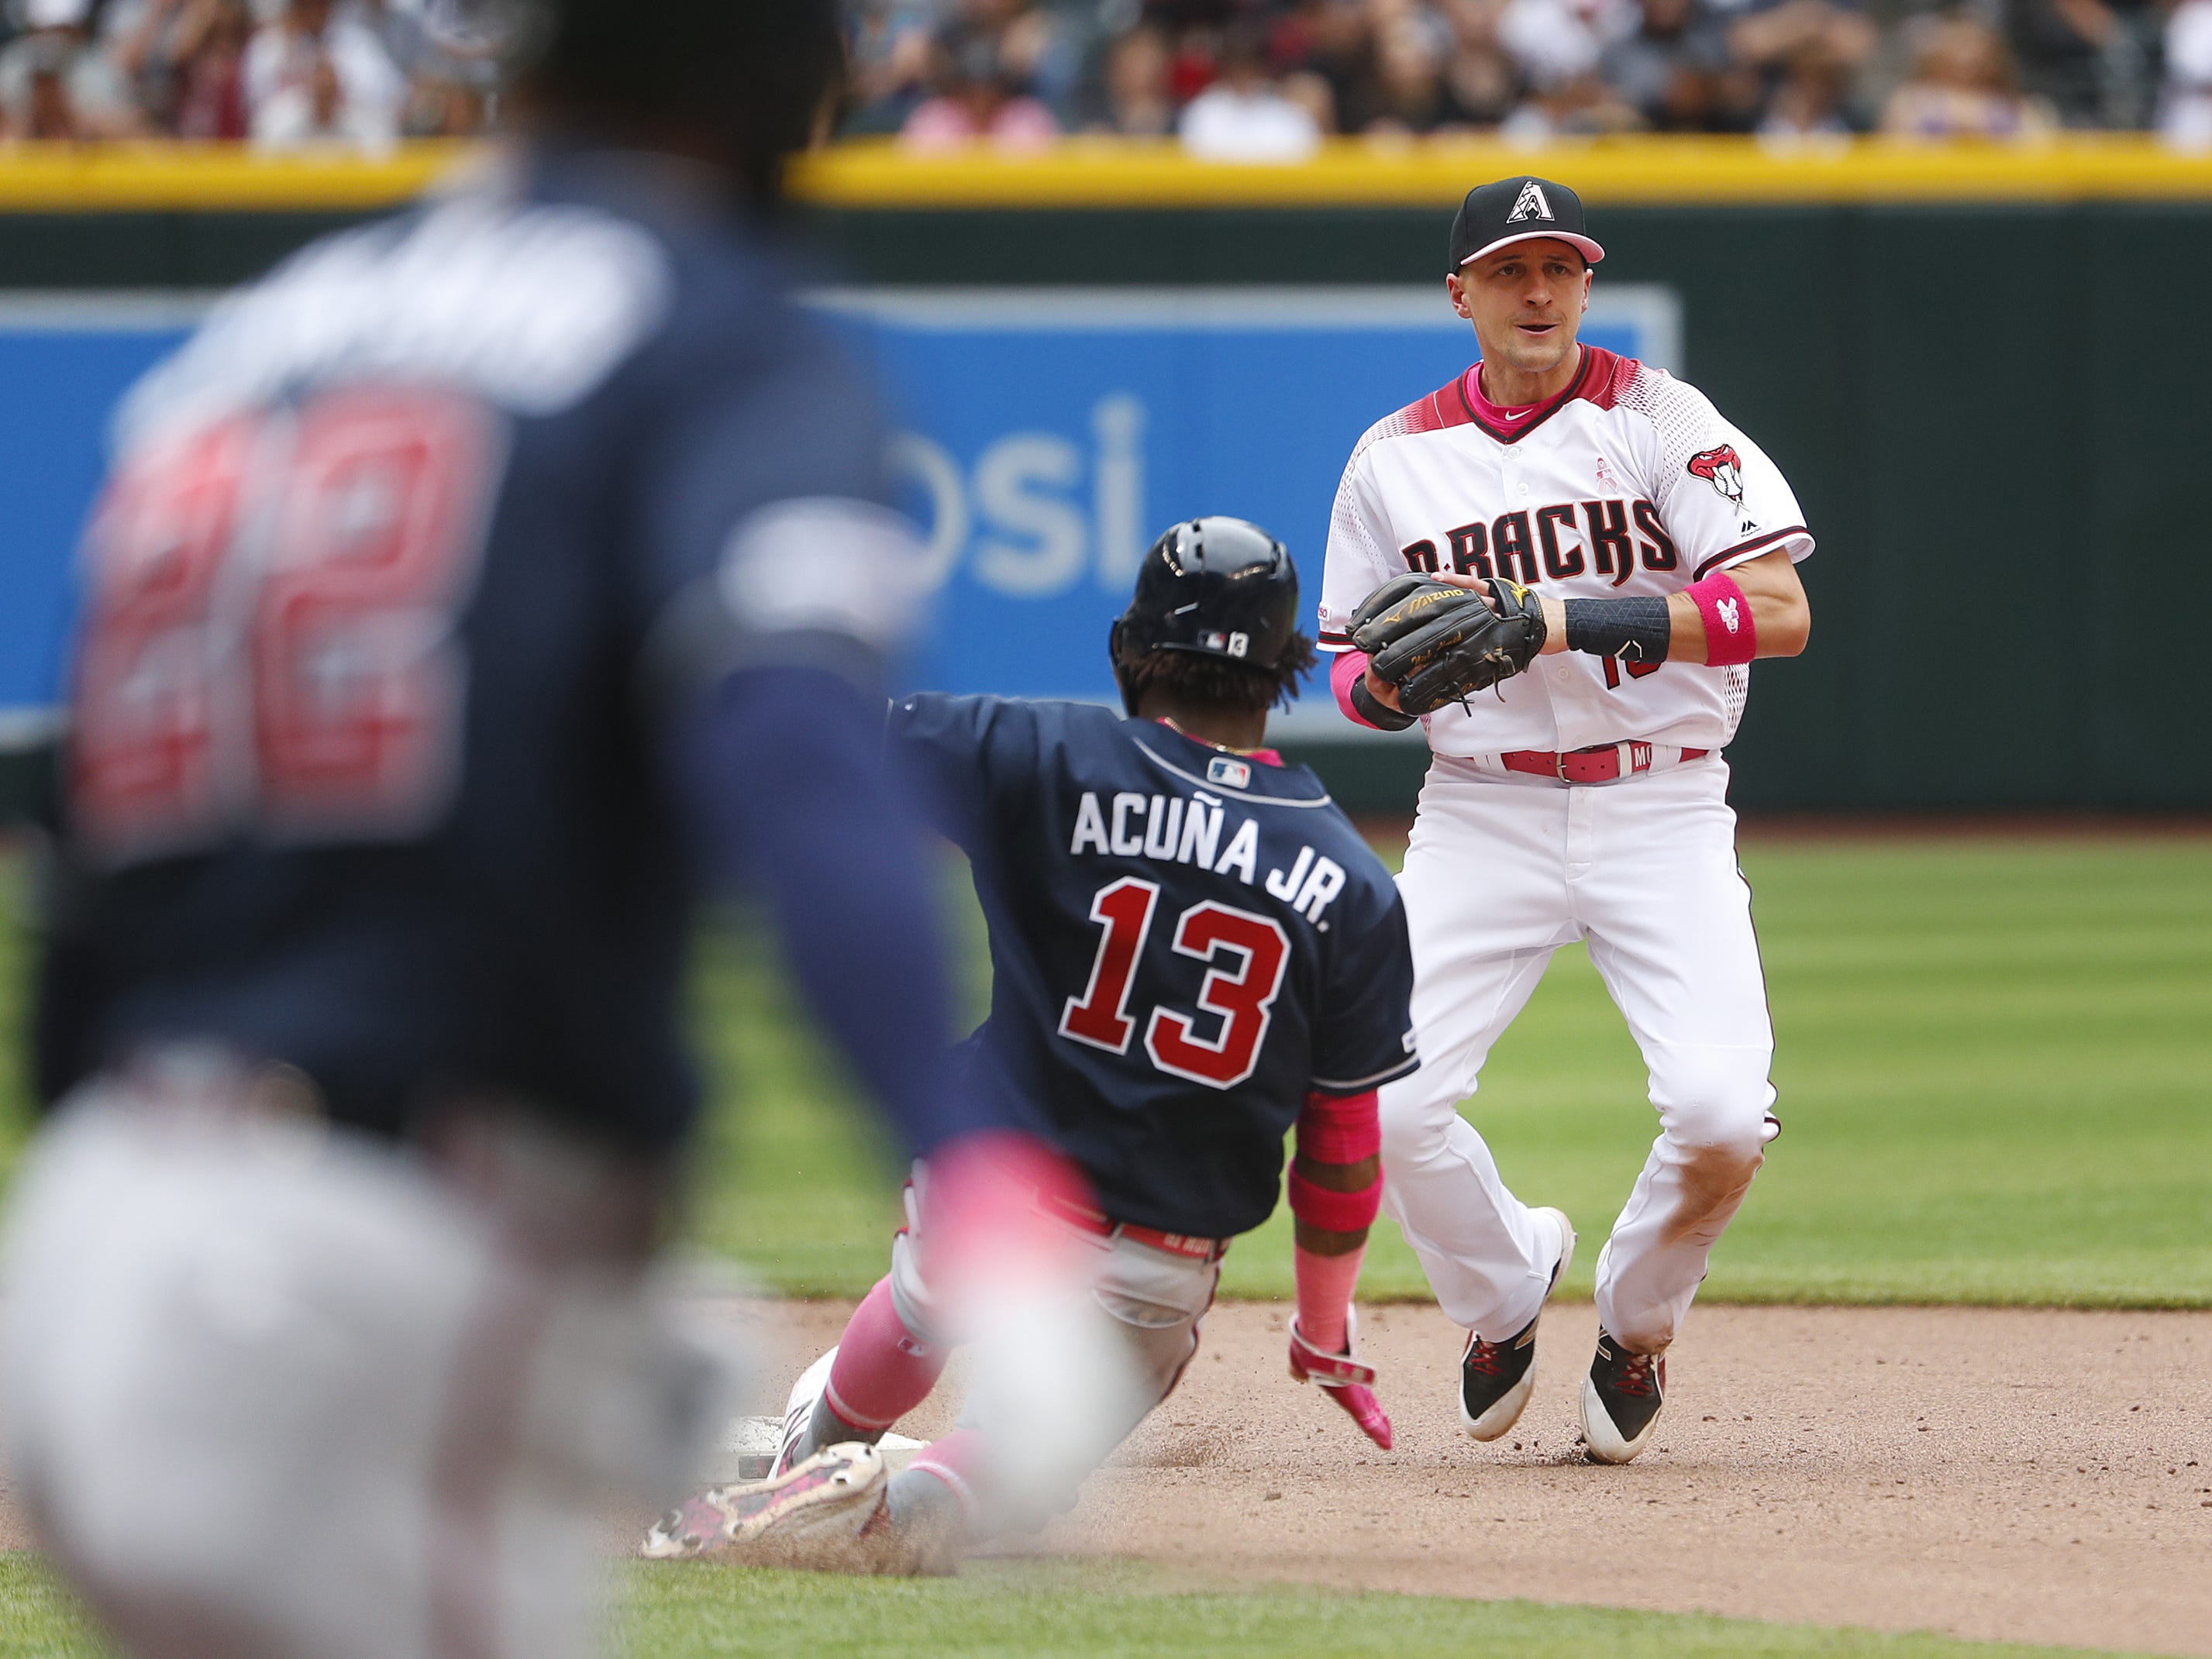 Diamondbacks' Nick Ahmed (13) records a force out on Braves' Ronald Acuna (13) before throwing to first for the double play during the seventh inning at Chase Field in Phoenix, Ariz. on May 12, 2019.